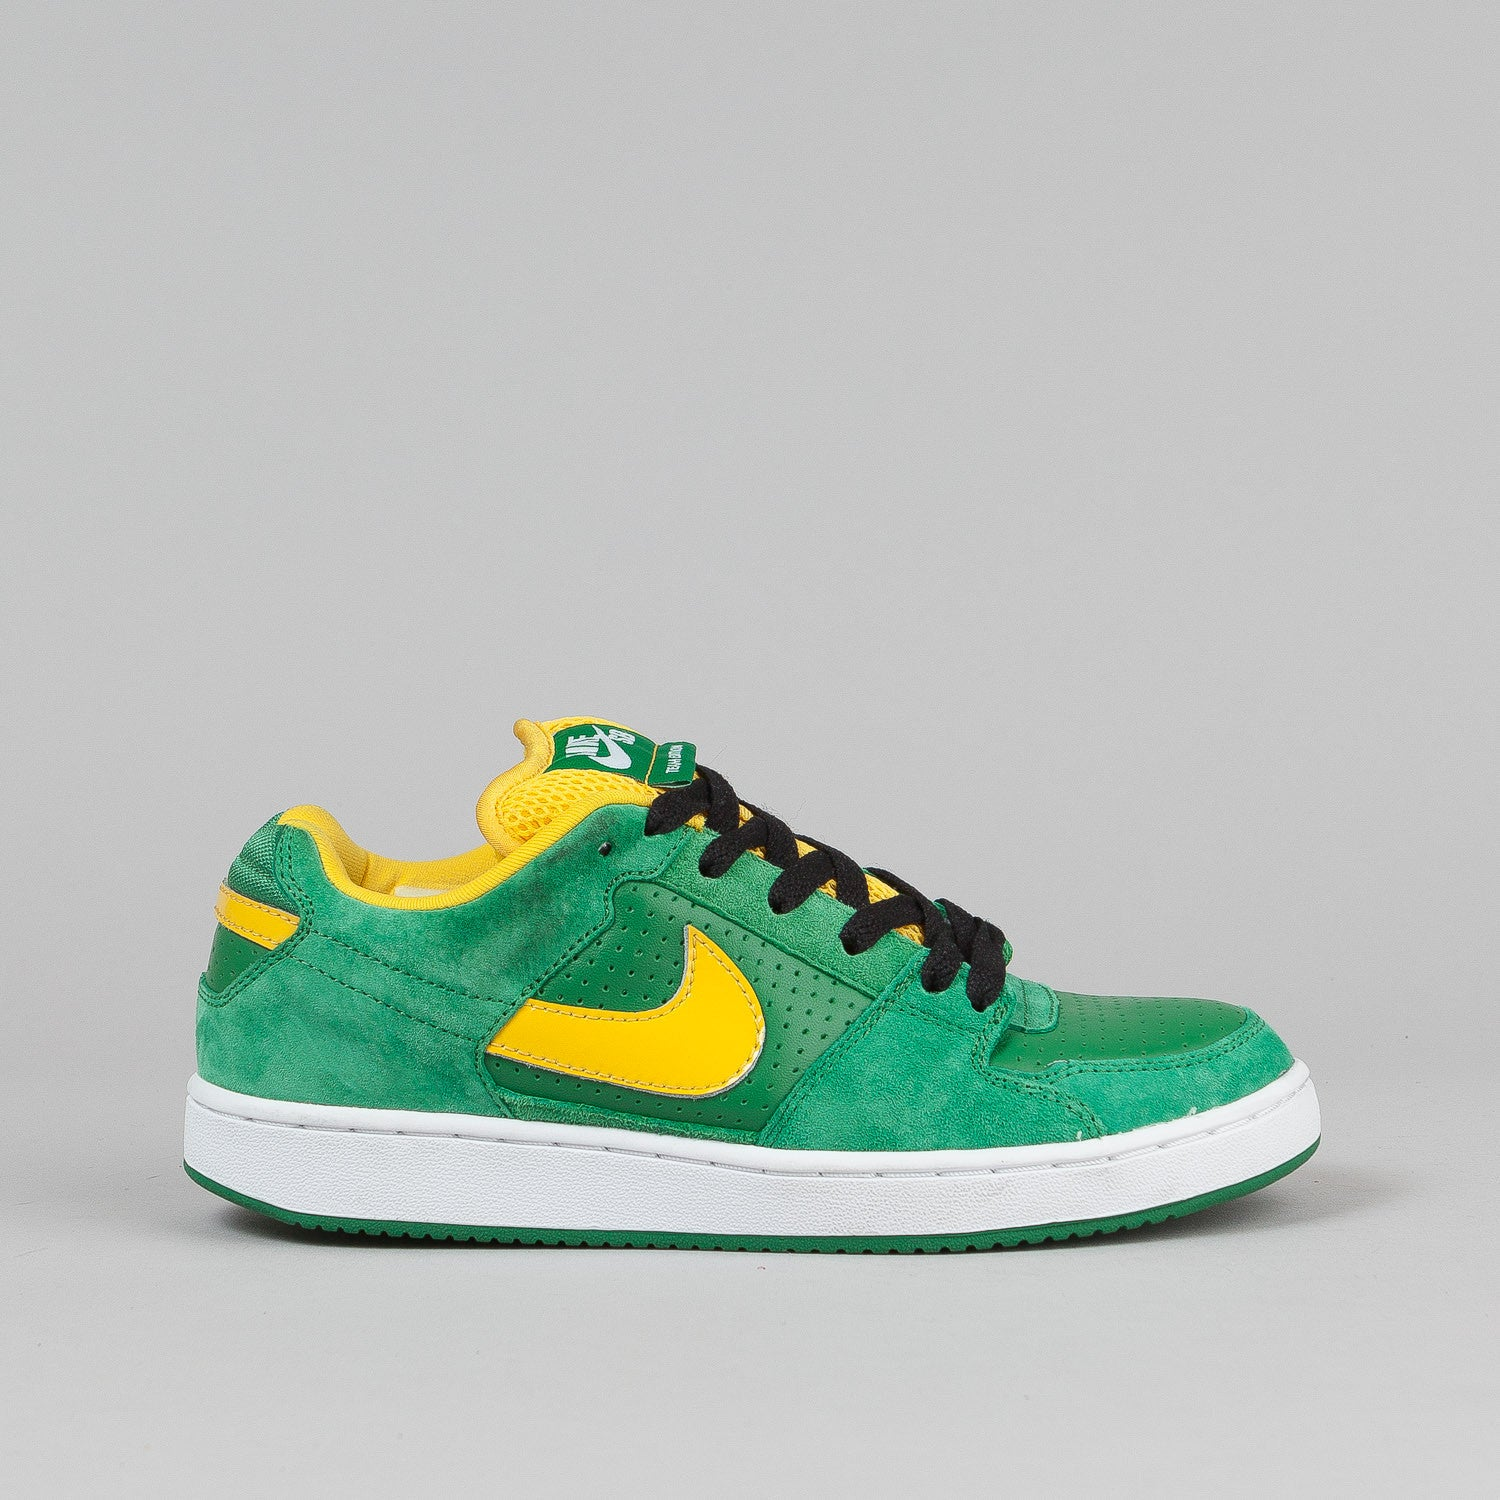 Nike SB Team Edition Shoes